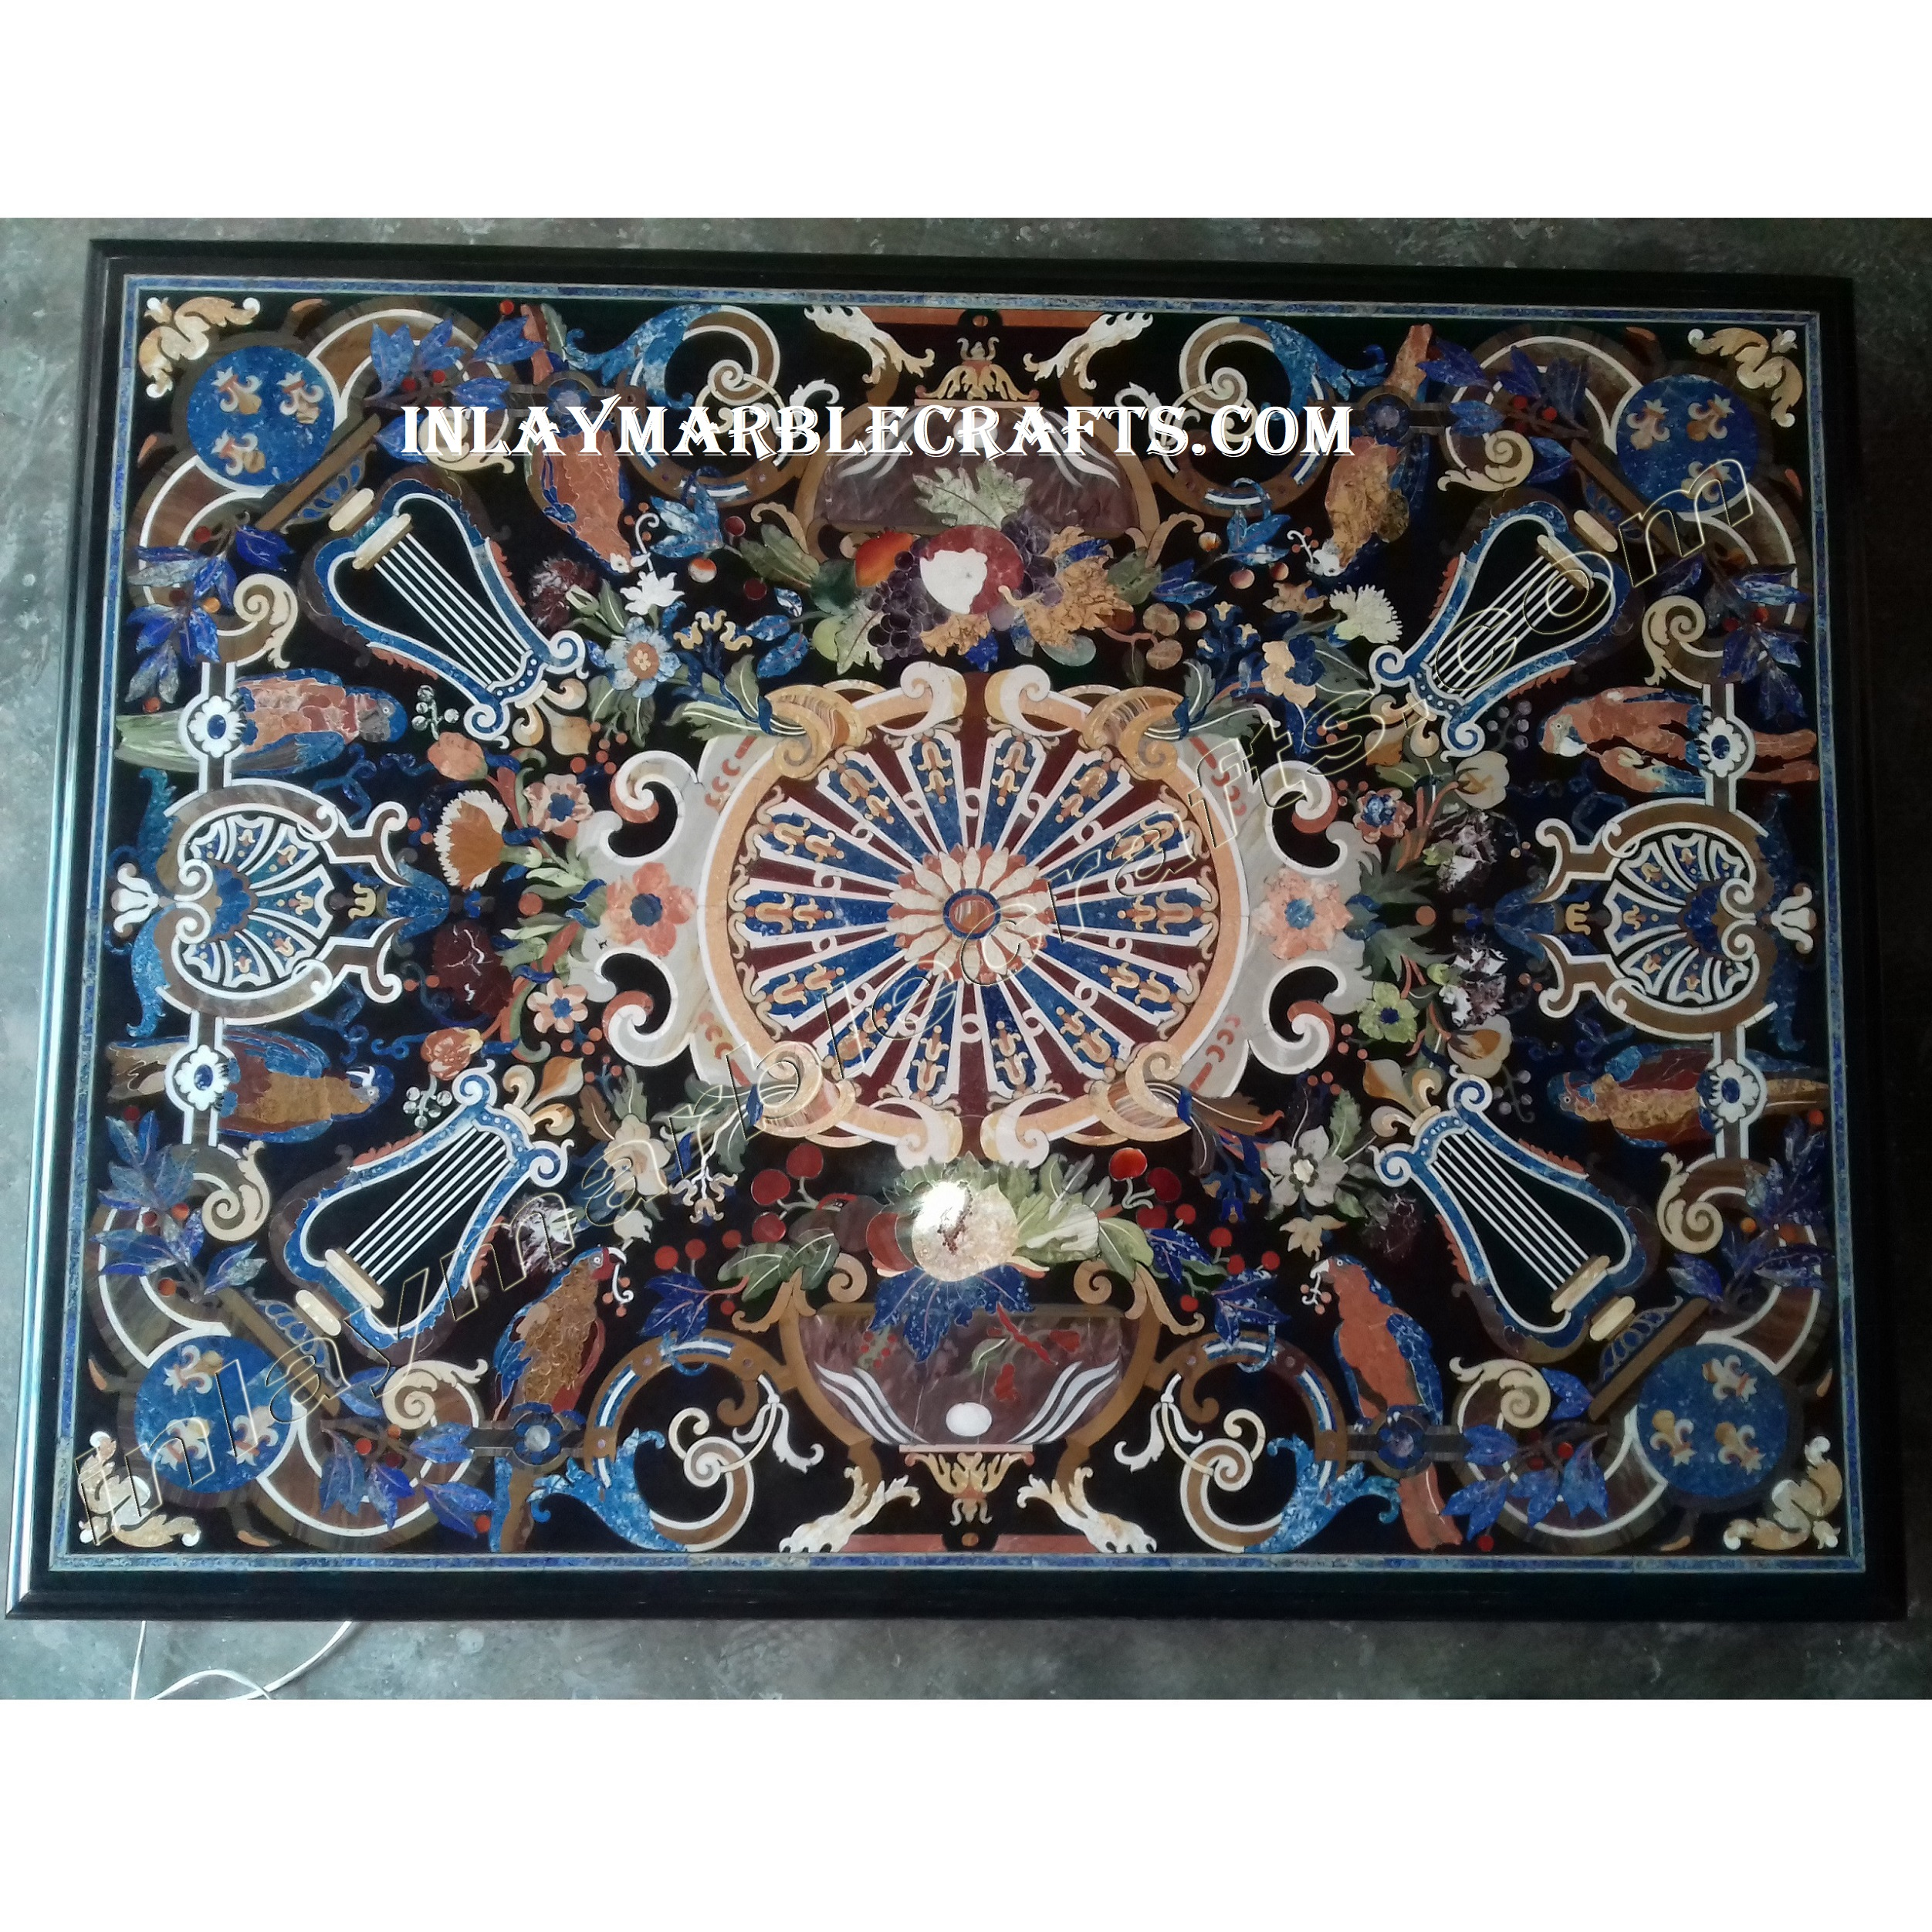 Handmade Black Marble Italian Design Dining Table Most Beautiful Having Semi-Precious Stone Inlay Art, Most Antique Turkish Design